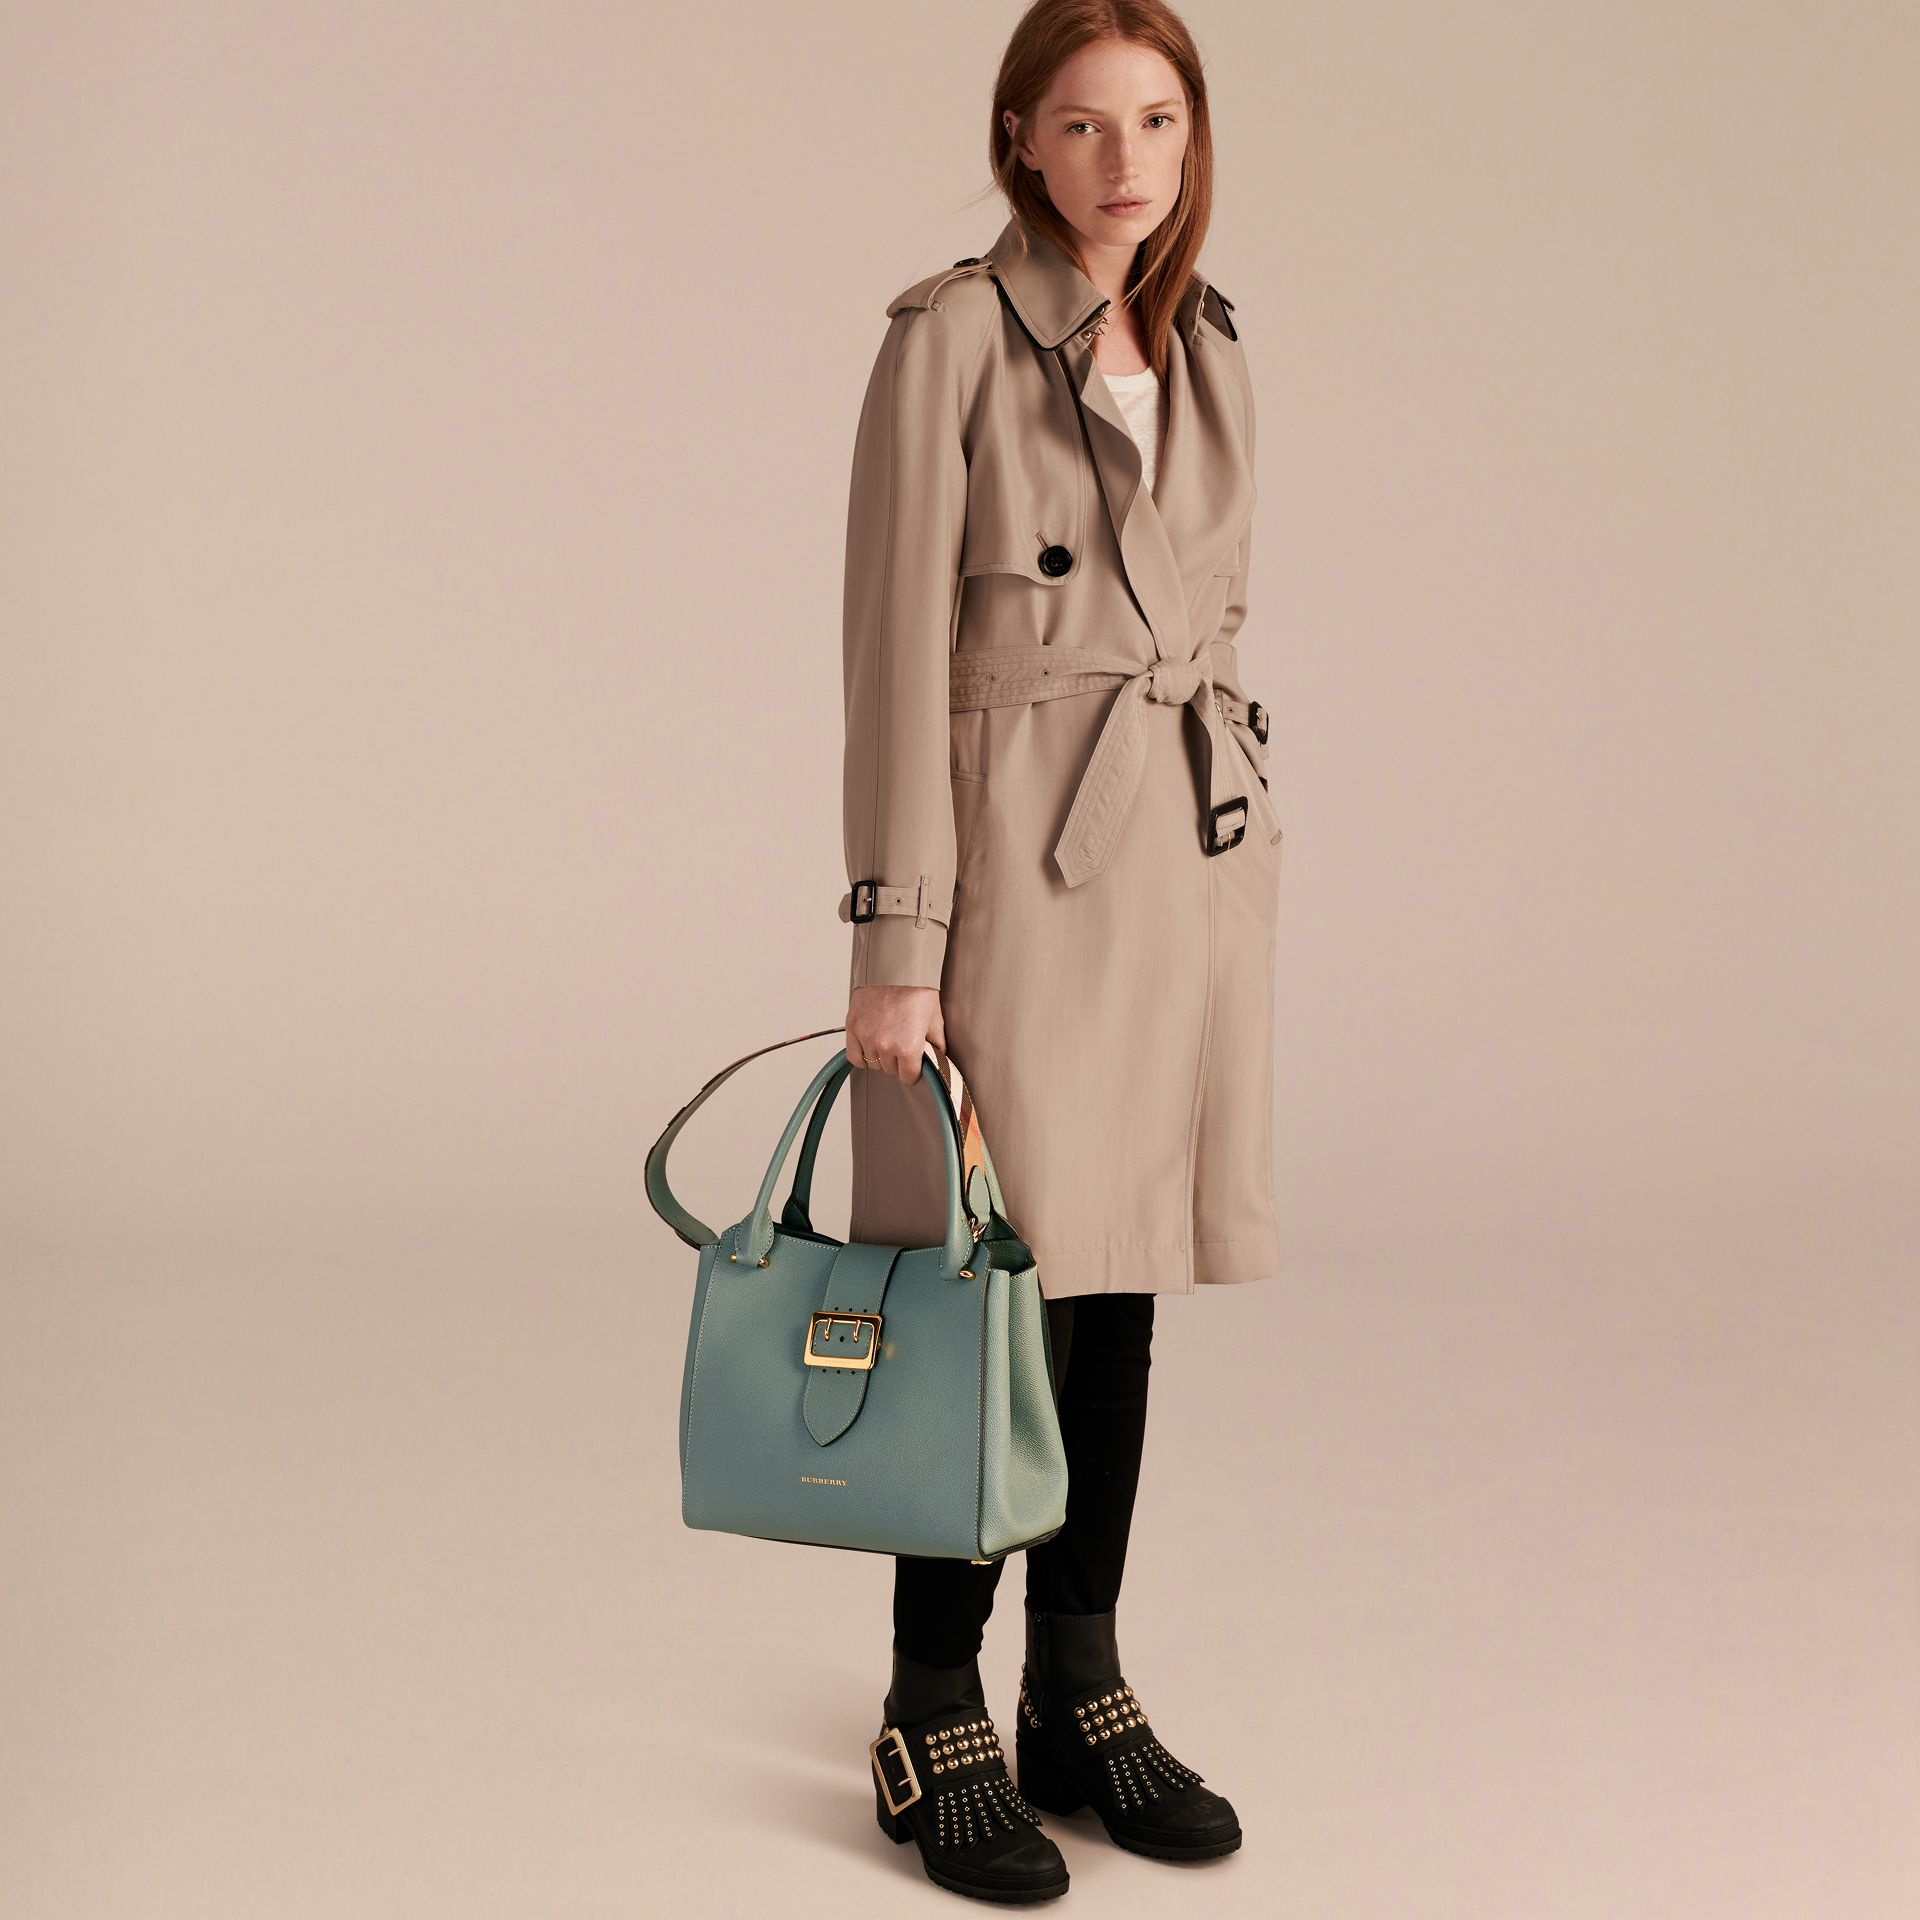 The Medium Buckle Tote in Grainy Leather in Eucalyptus Green - gallery image 3